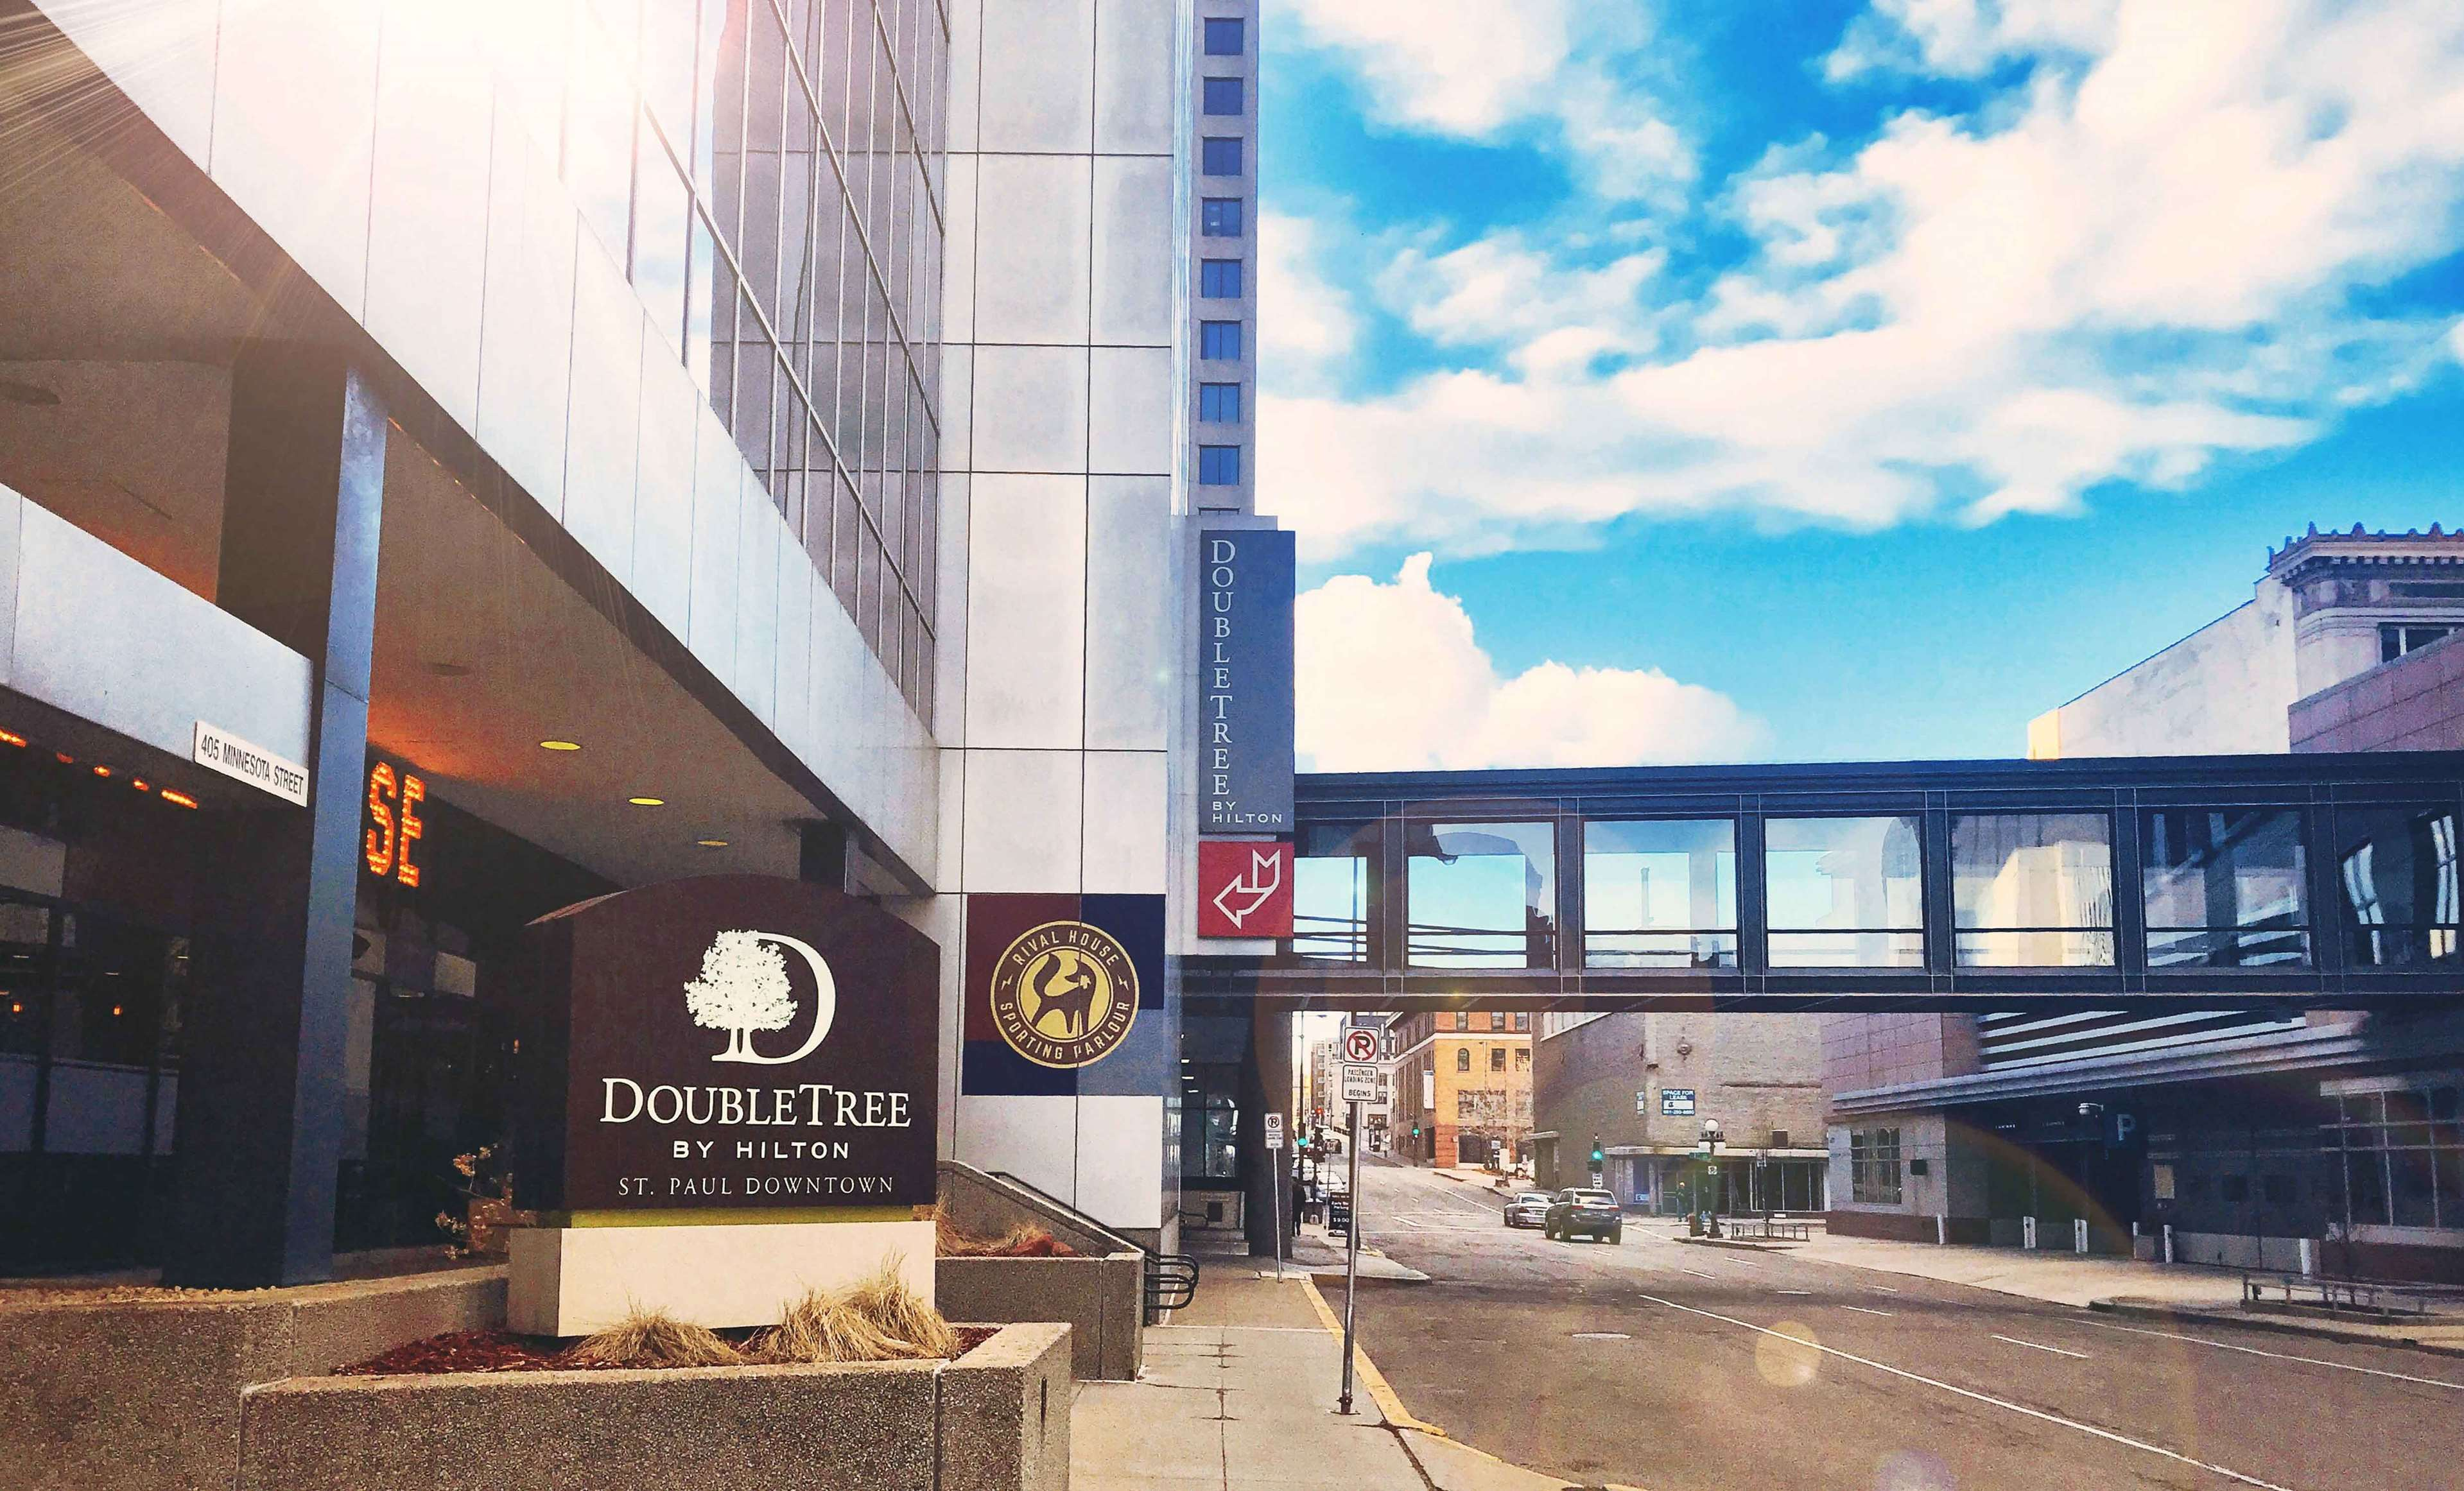 DoubleTree by Hilton Hotel St Paul Downtown image 1